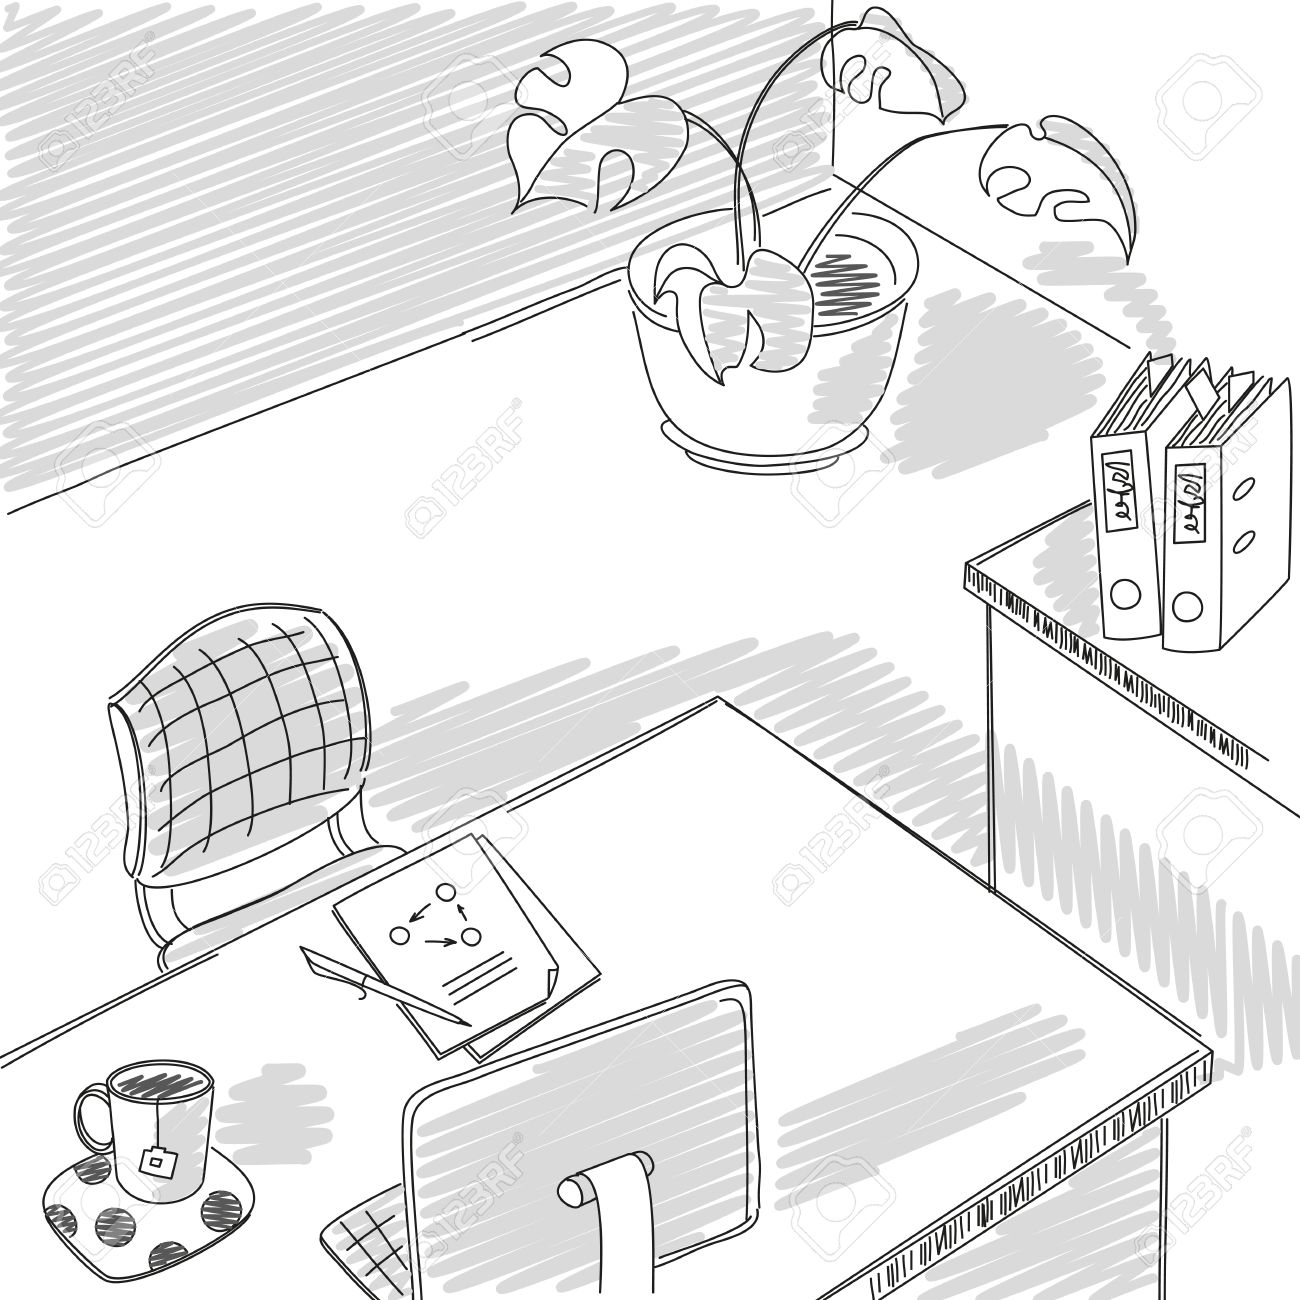 Office Sketch Graphical Drawing Design Interior Office Workplace